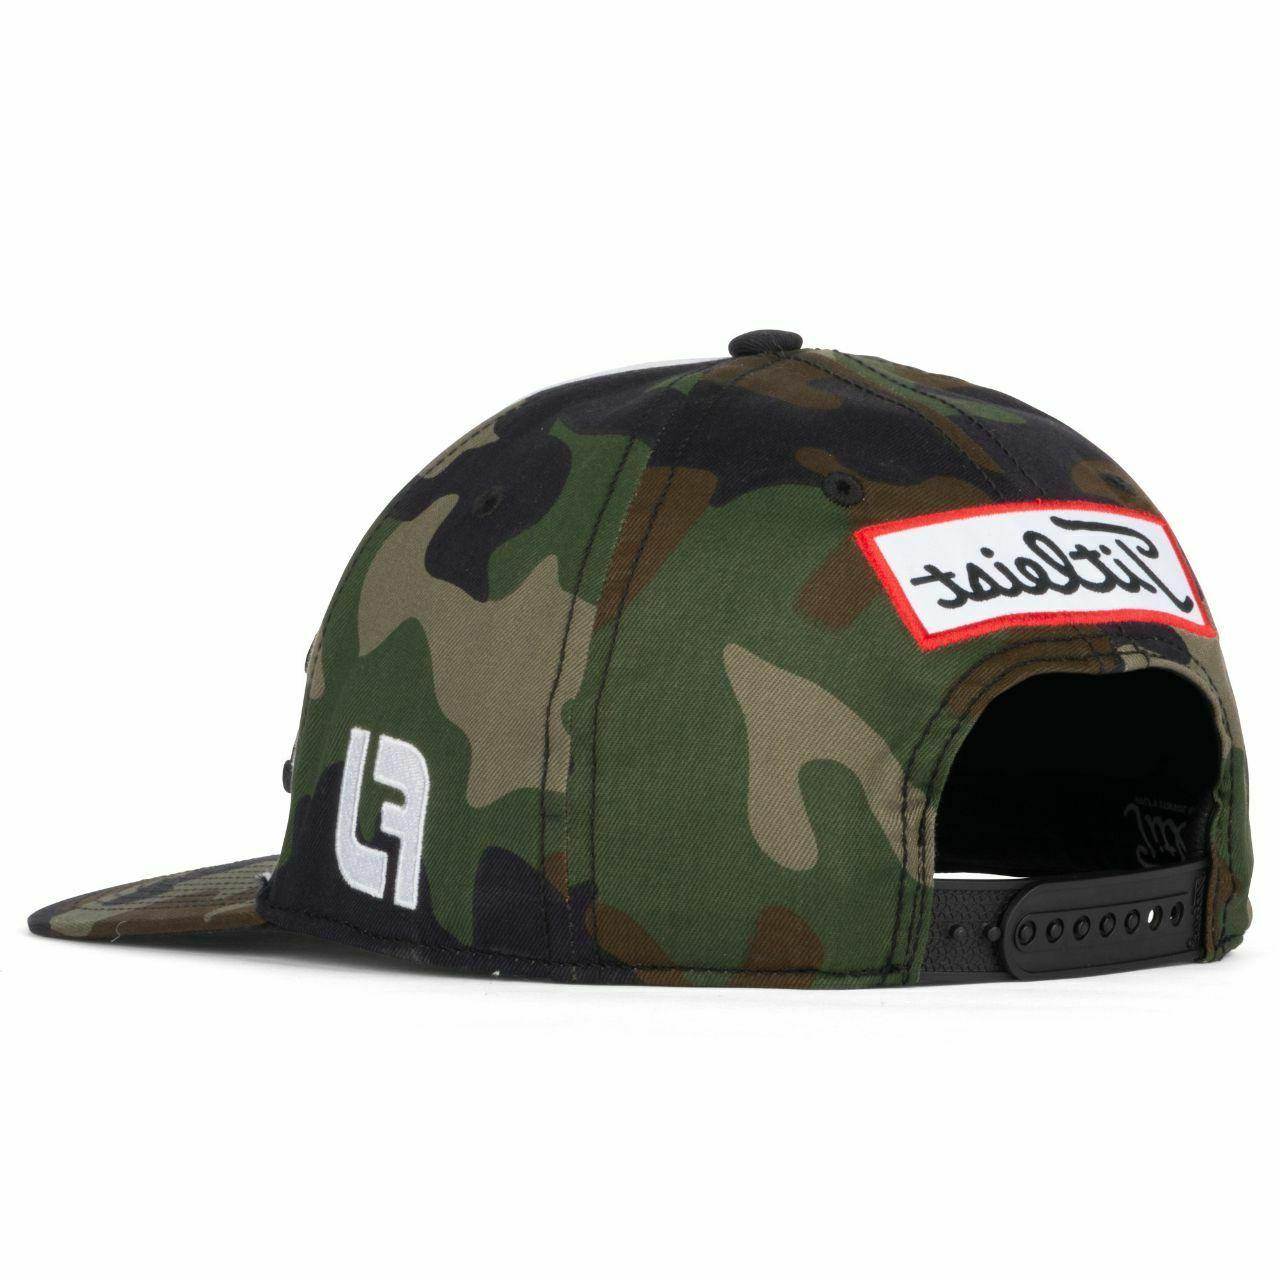 Titleist Golf Woodland Camo Hat Limited